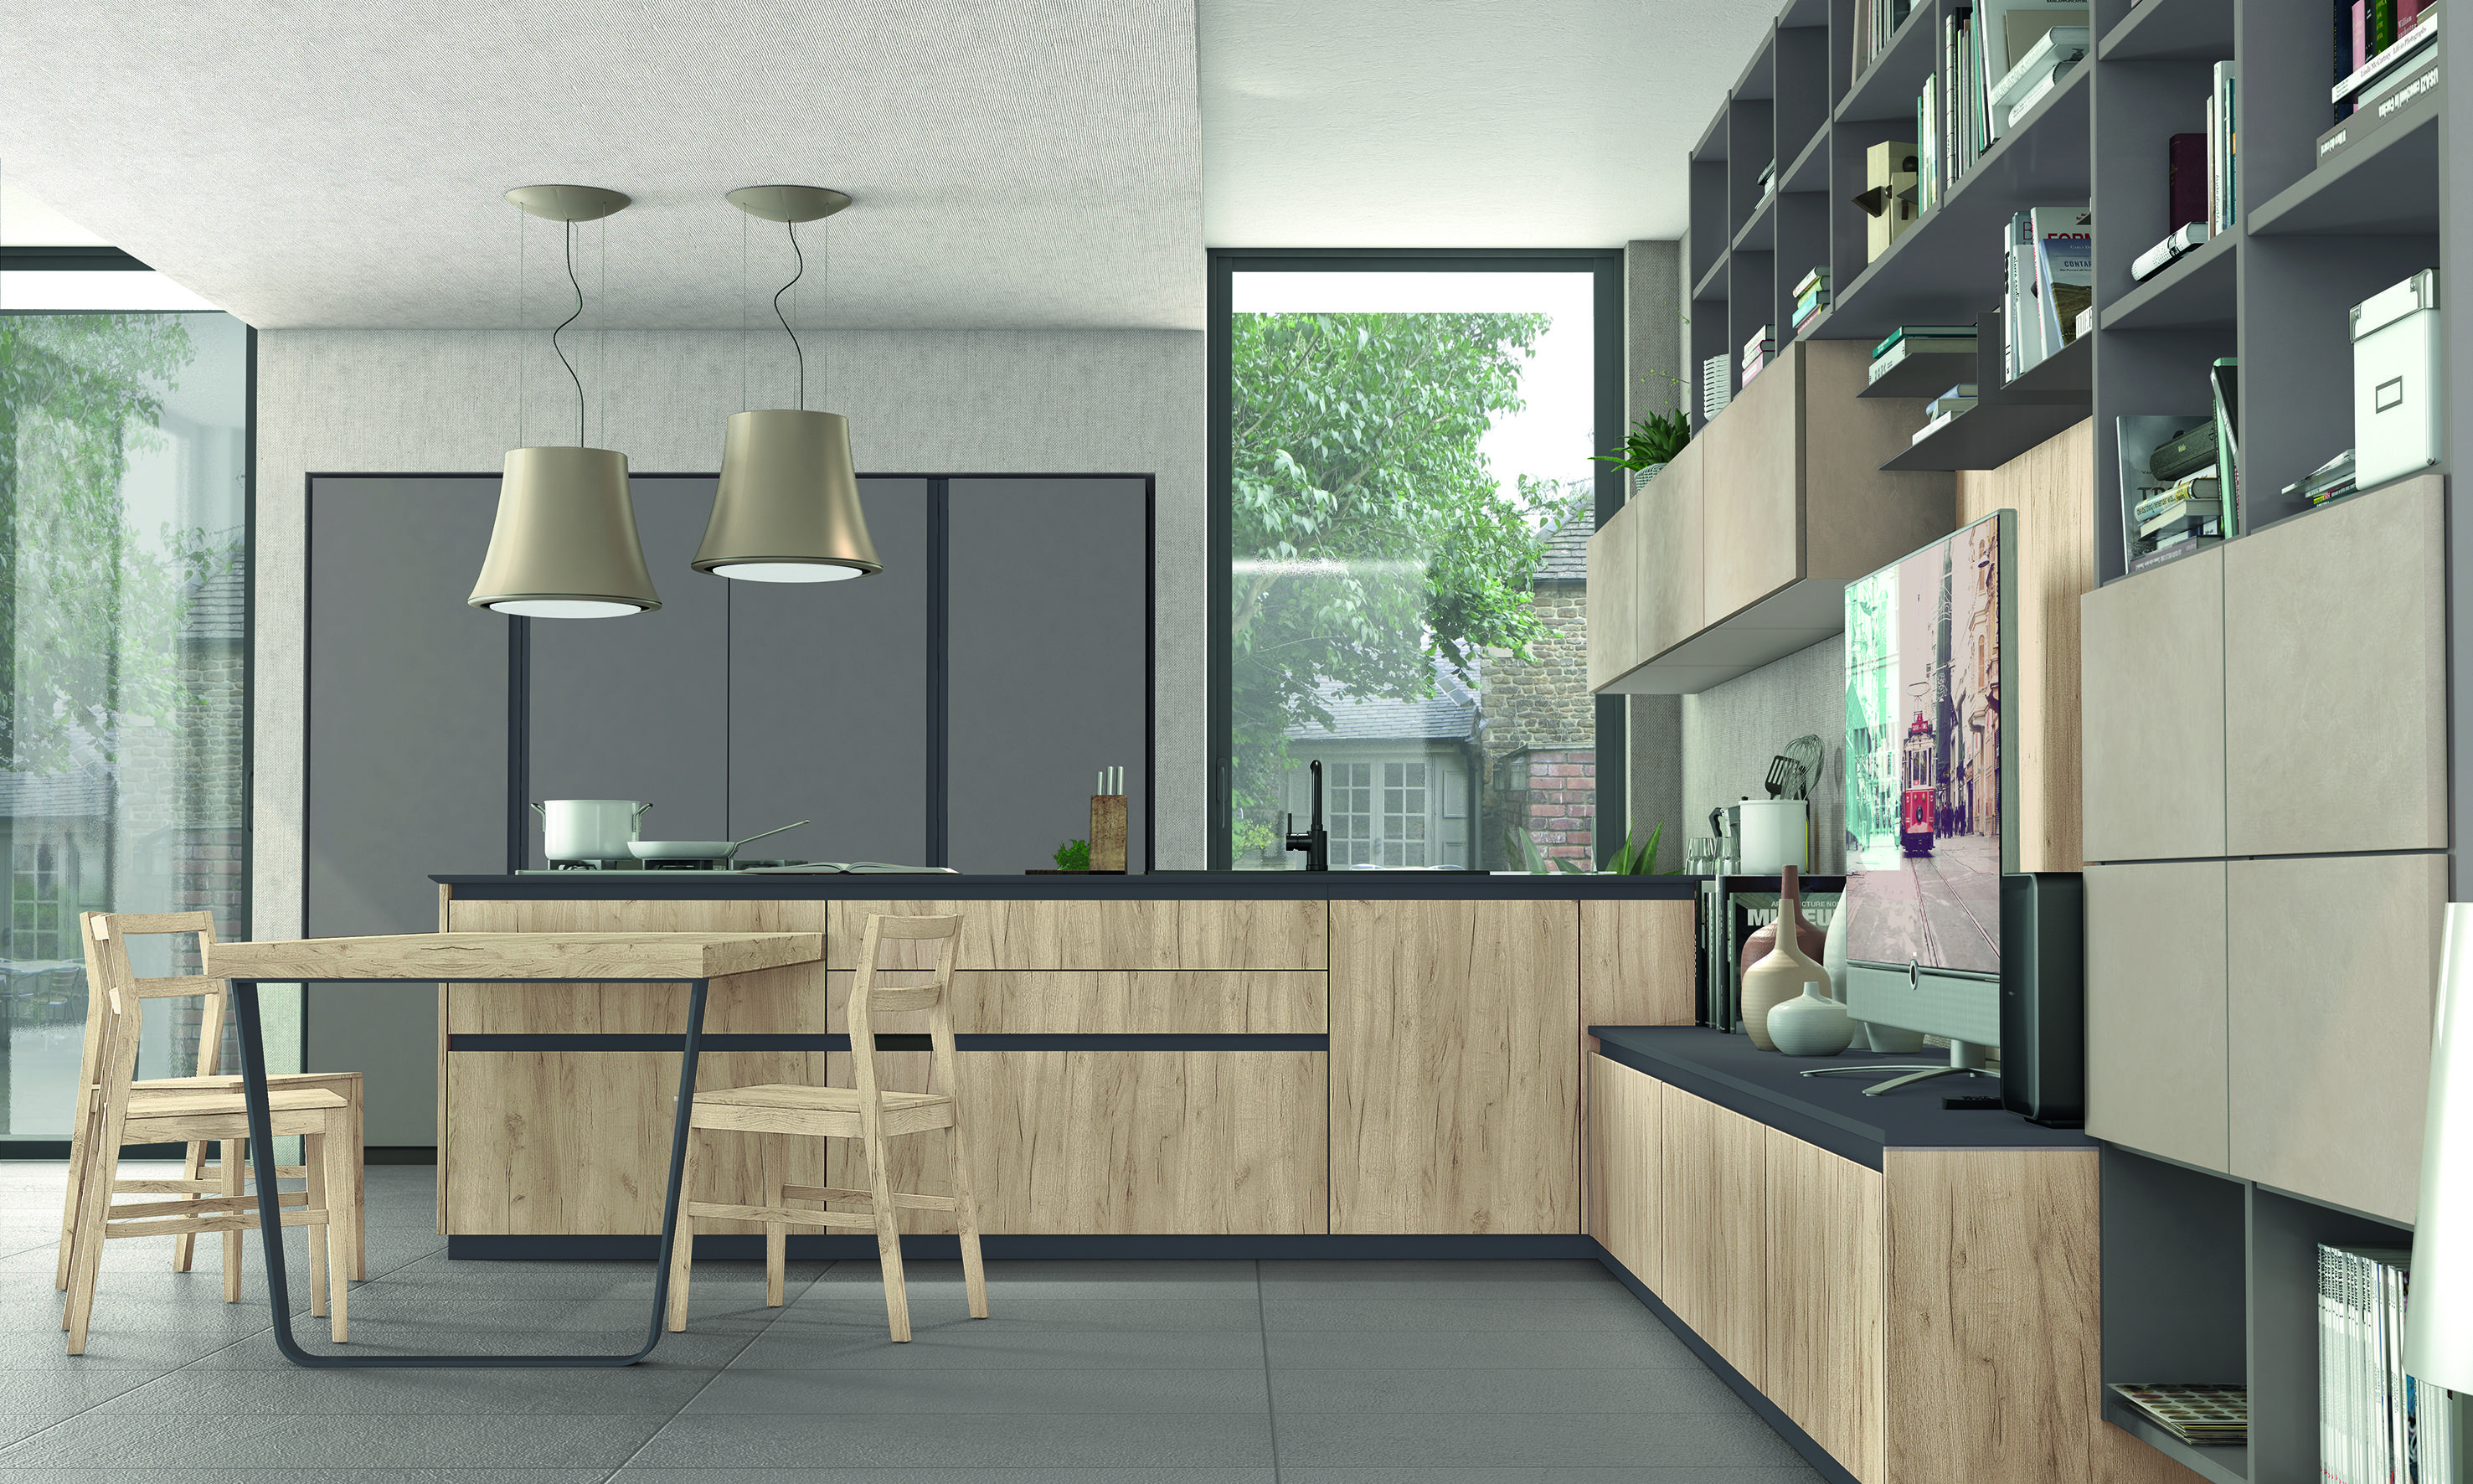 Immagina kitchen designs by Cucine Lube, integrating the living and ...